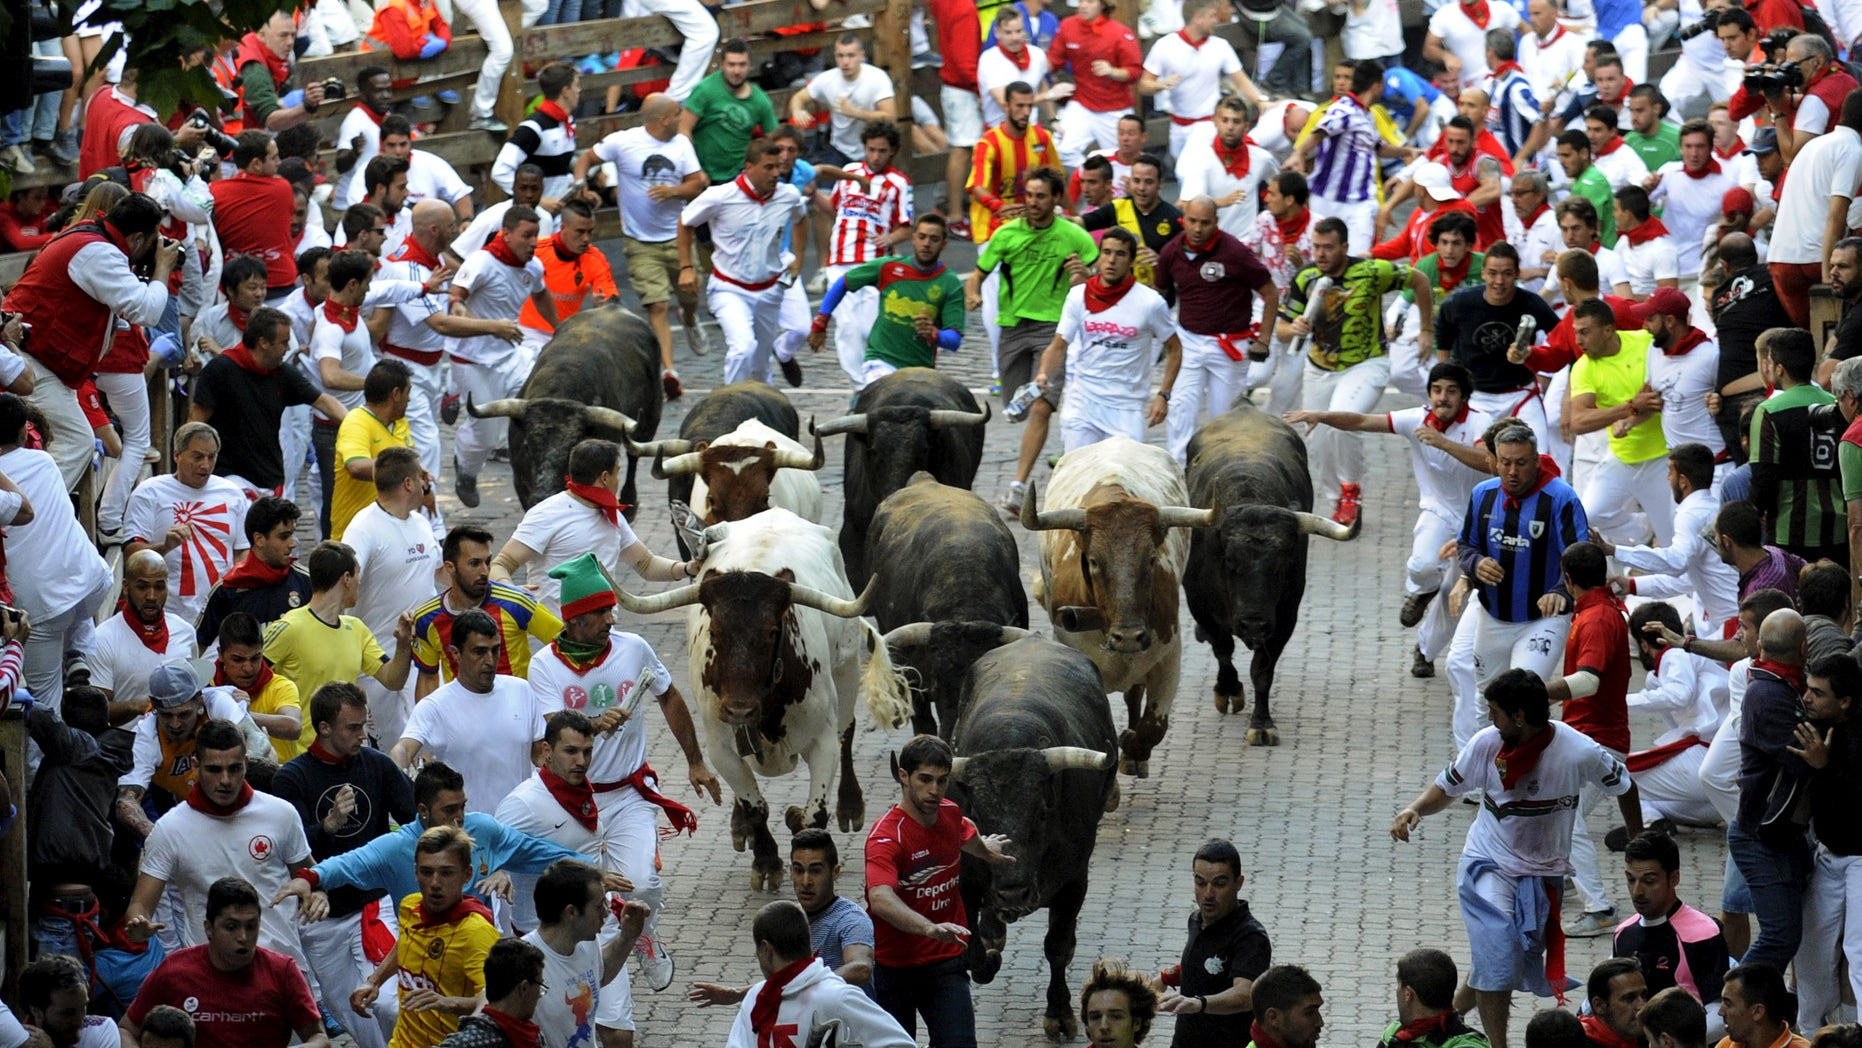 July 14, 2015 - FILE photo of runners sprinting alongside Miura fighting bulls at the entrance to the bullring on the last day of the running of the bulls of the San Fermin festival in Pamplona, northern Spain. A Spanish mayor says a man has died after being gored while videoing a bull-run with his cell phone.